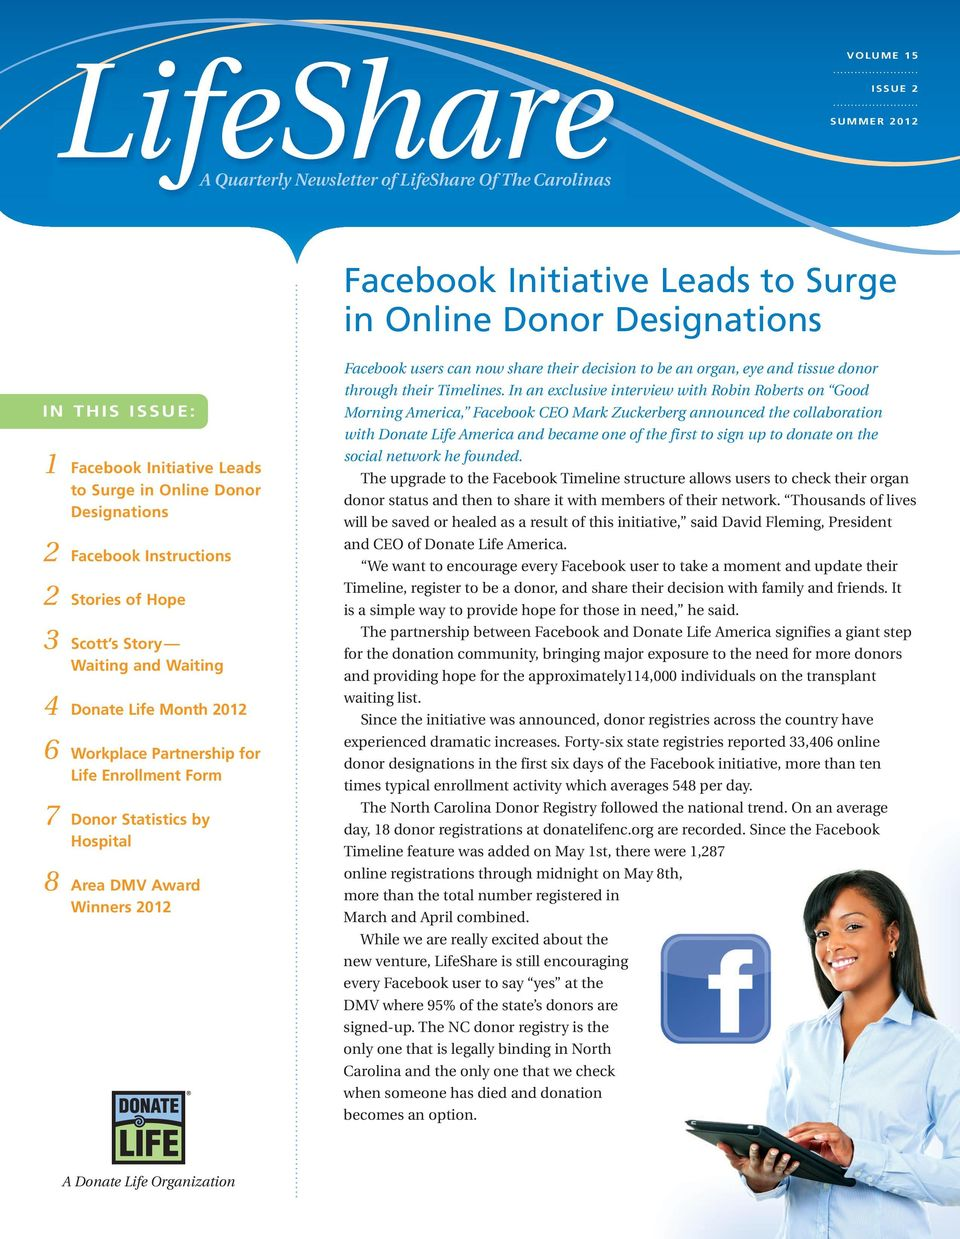 Designations 2 Facebook Instructions 2 Stories of Hope 3 Scott s Story Waiting and Waiting 4 Donate Life Month 2012 6 Workplace Partnership for Life Enrollment Form 7 Donor Statistics by Hospital 8